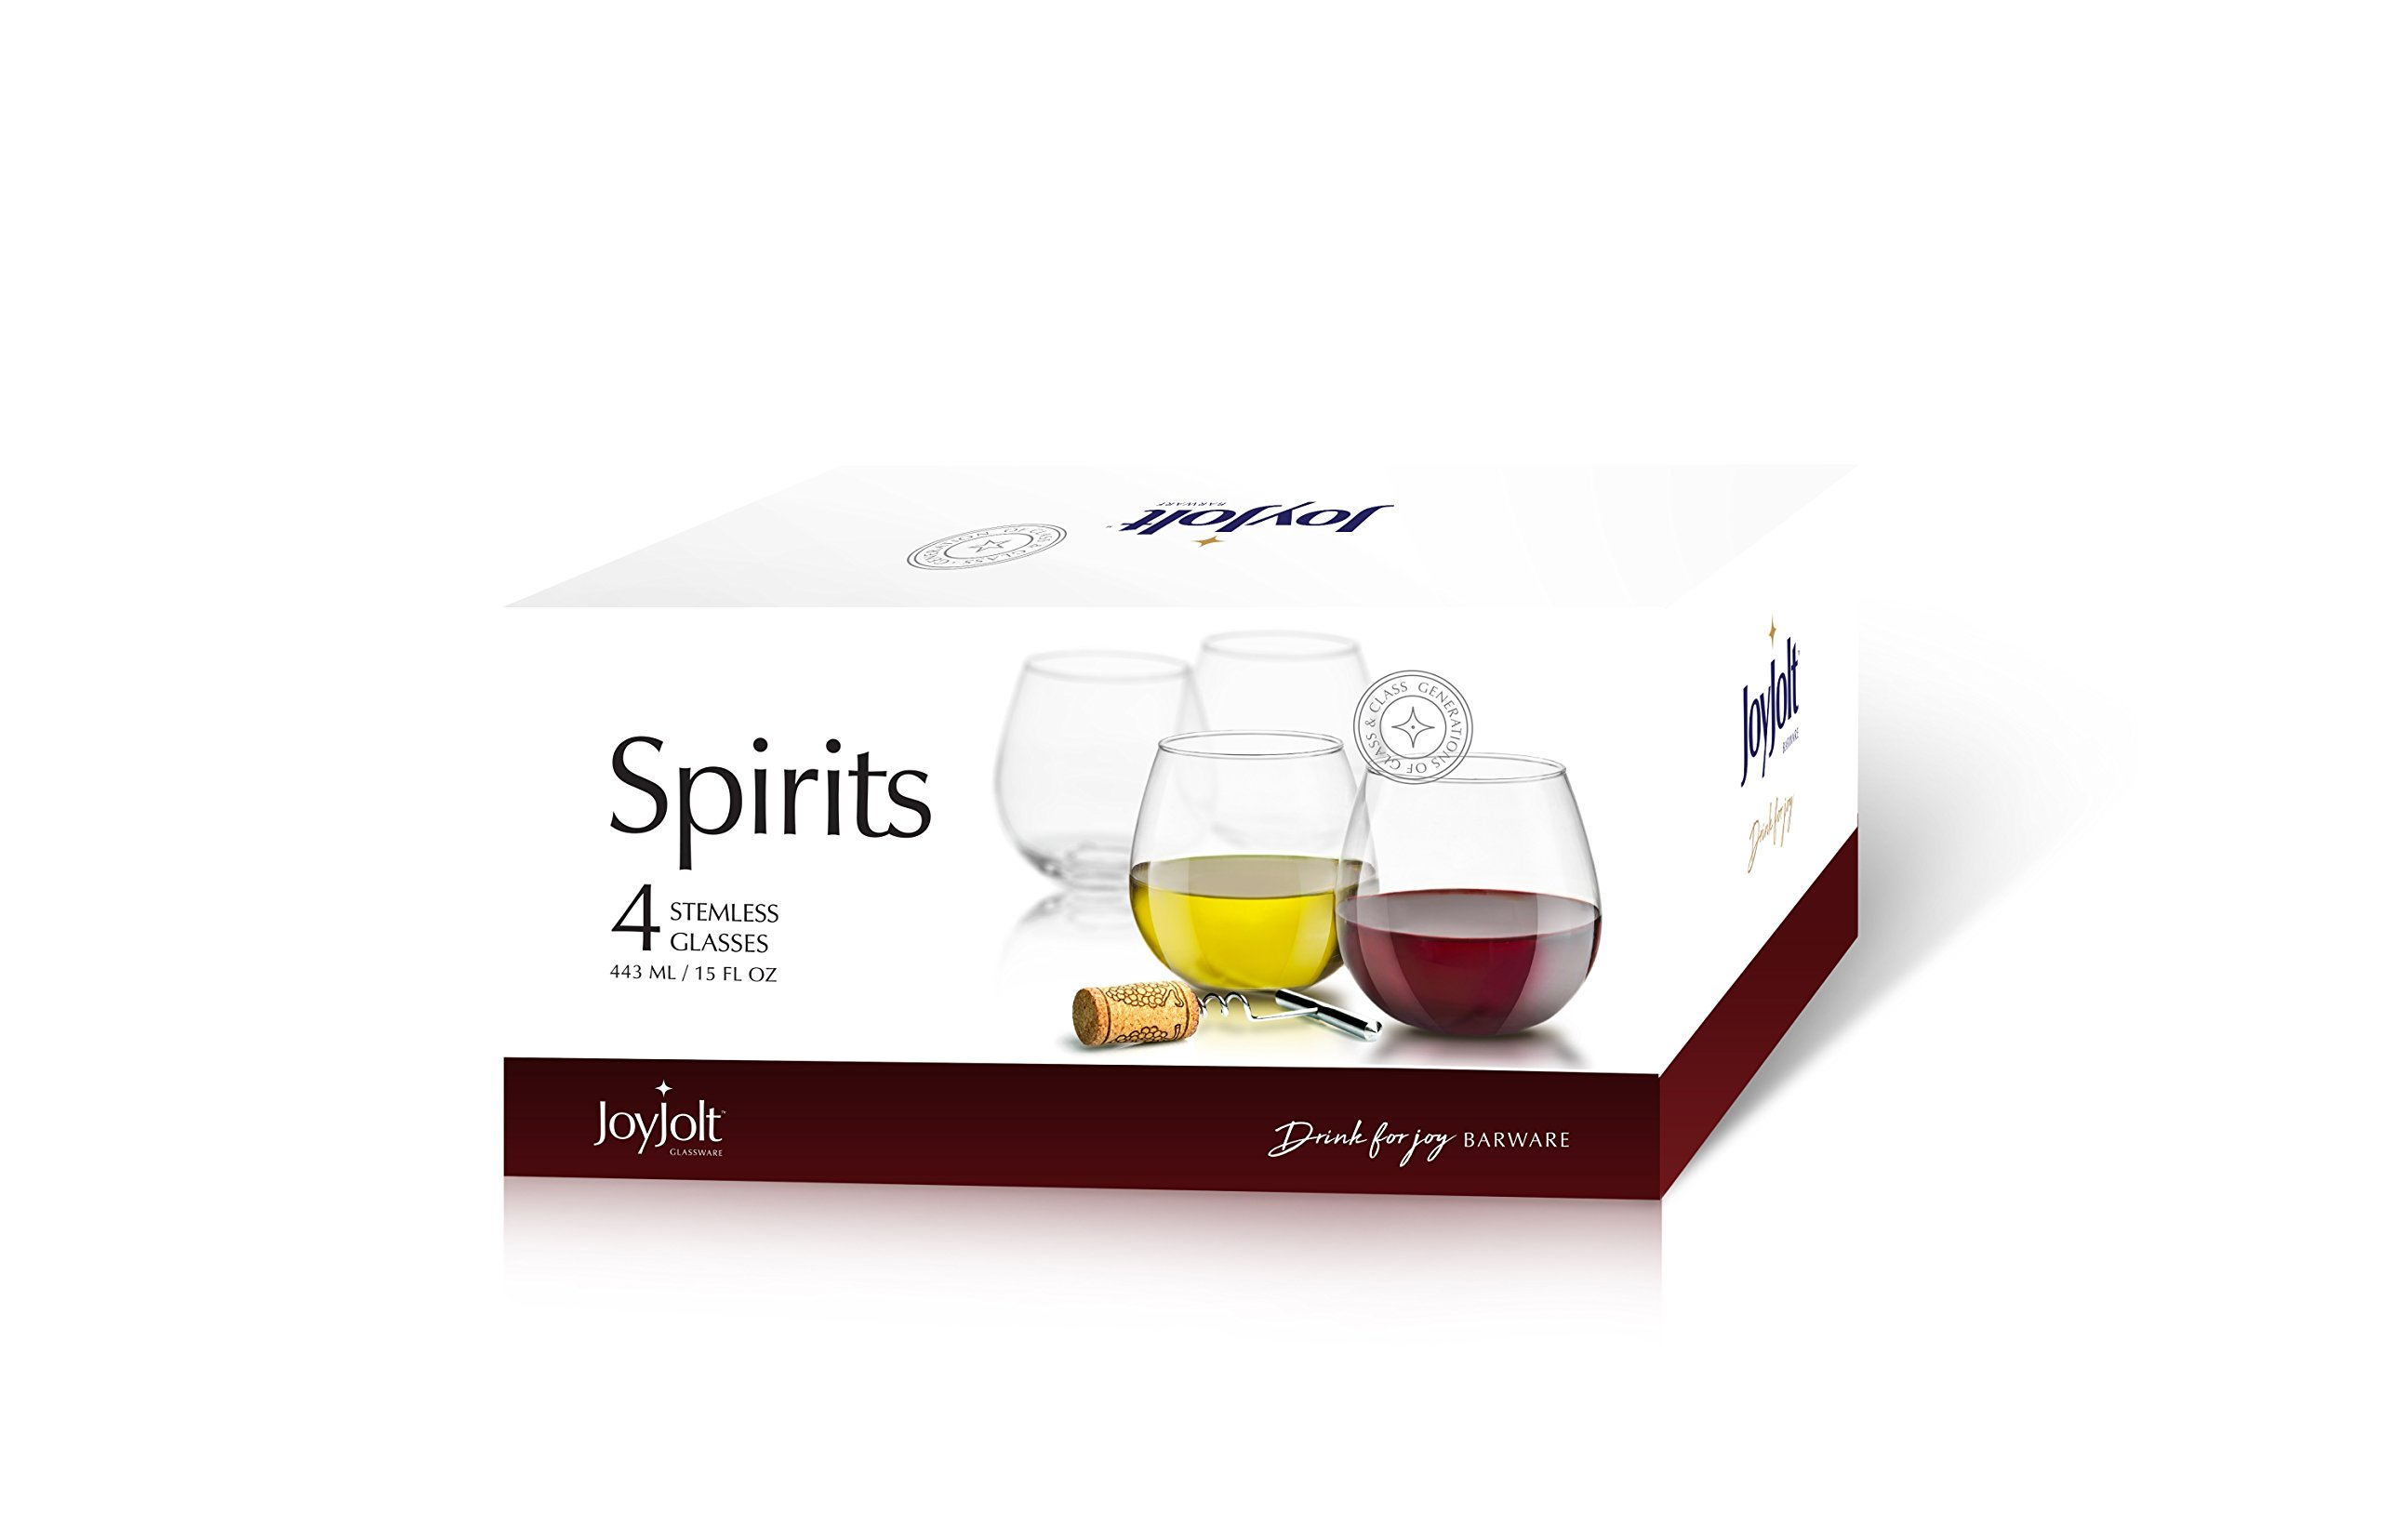 JoyJolt Spirits Stemless Wine Glasses 15 Ounce, Set of 4 Great For White Or Red Wine Mother's Day Wine Gifts Wines Glass Sets by JoyJolt (Image #3)